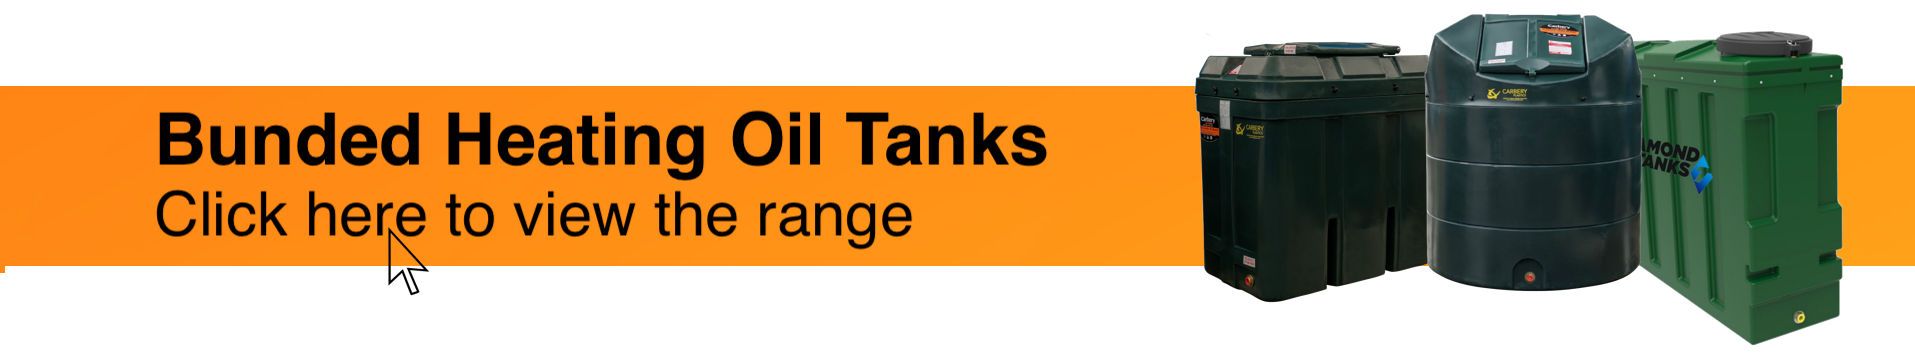 Photograph of Carbery 650RB Rectangular Slimline Bunded Oil Tank, Carbery 1350VB Vertical Bunded Oil Tank and Diamond 1400SSL Superslim Slimline Bunded Oil Tank on an orange background. Accompanying text encourages visitors to view Fuel Tank Store's range of Bunded Oil Tanks.